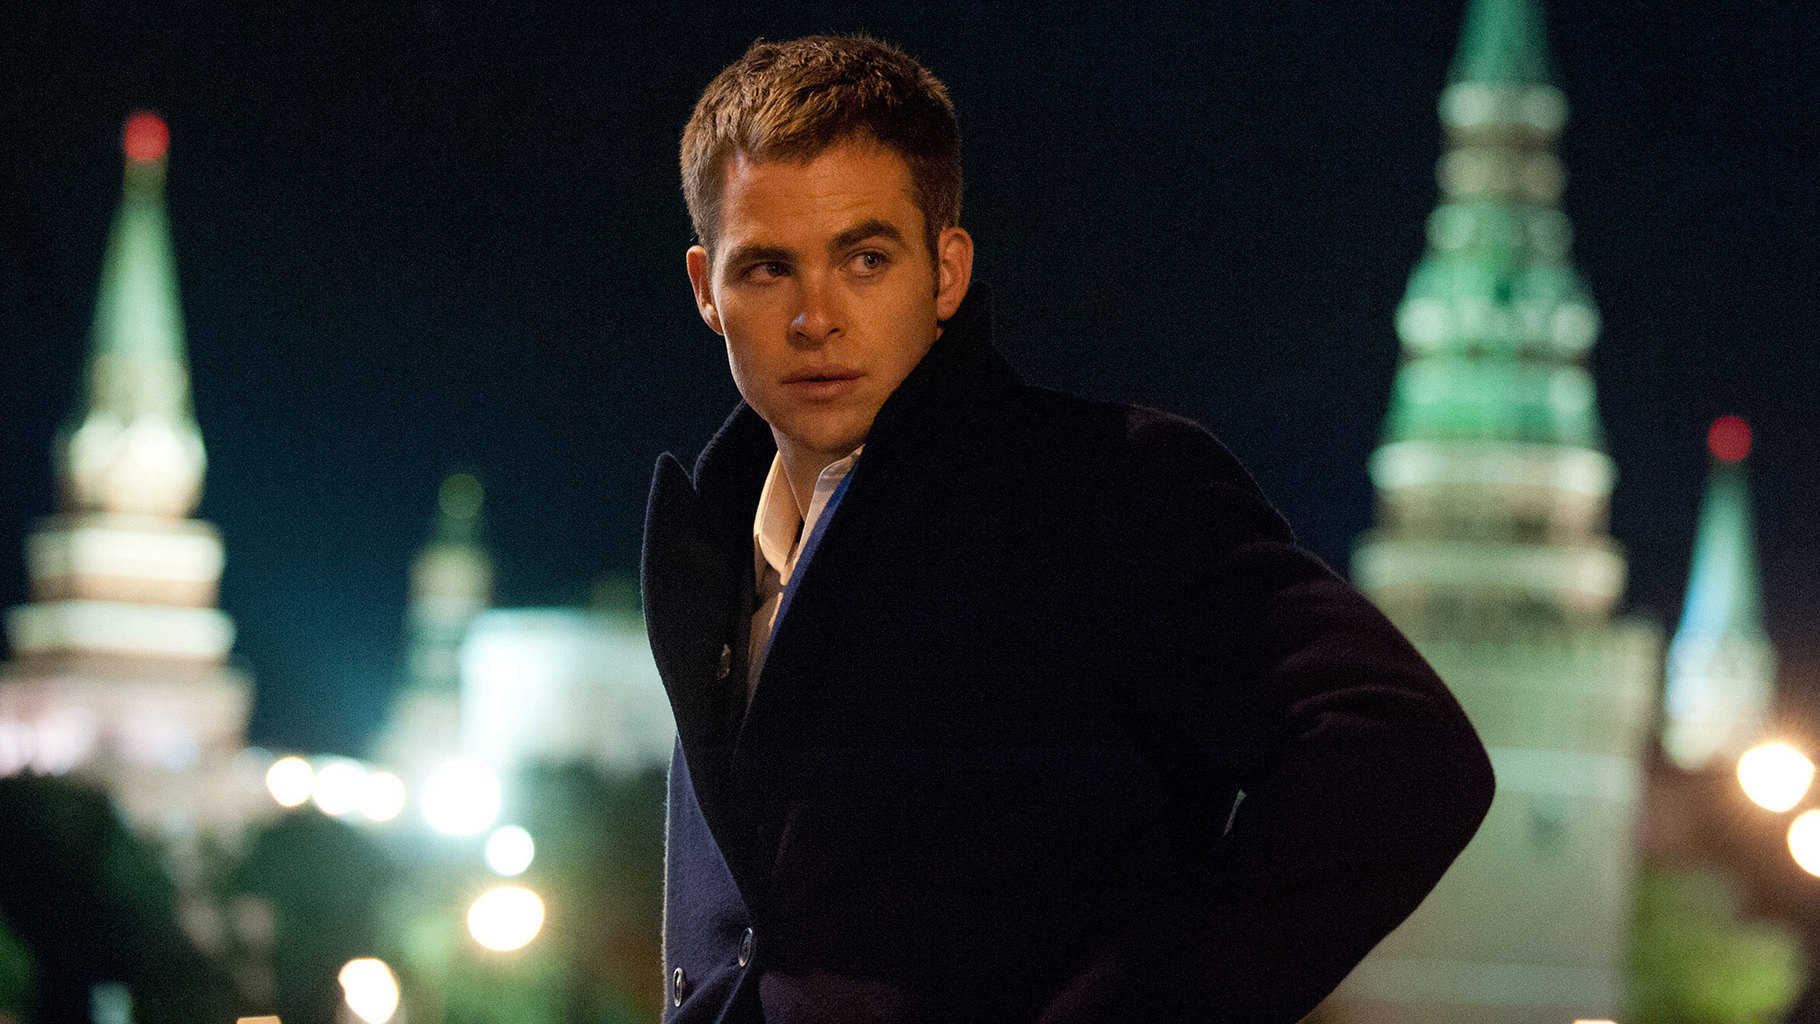 film reviews | movies | features | BRWC Jack Ryan: Shadow Recruit - New Clip